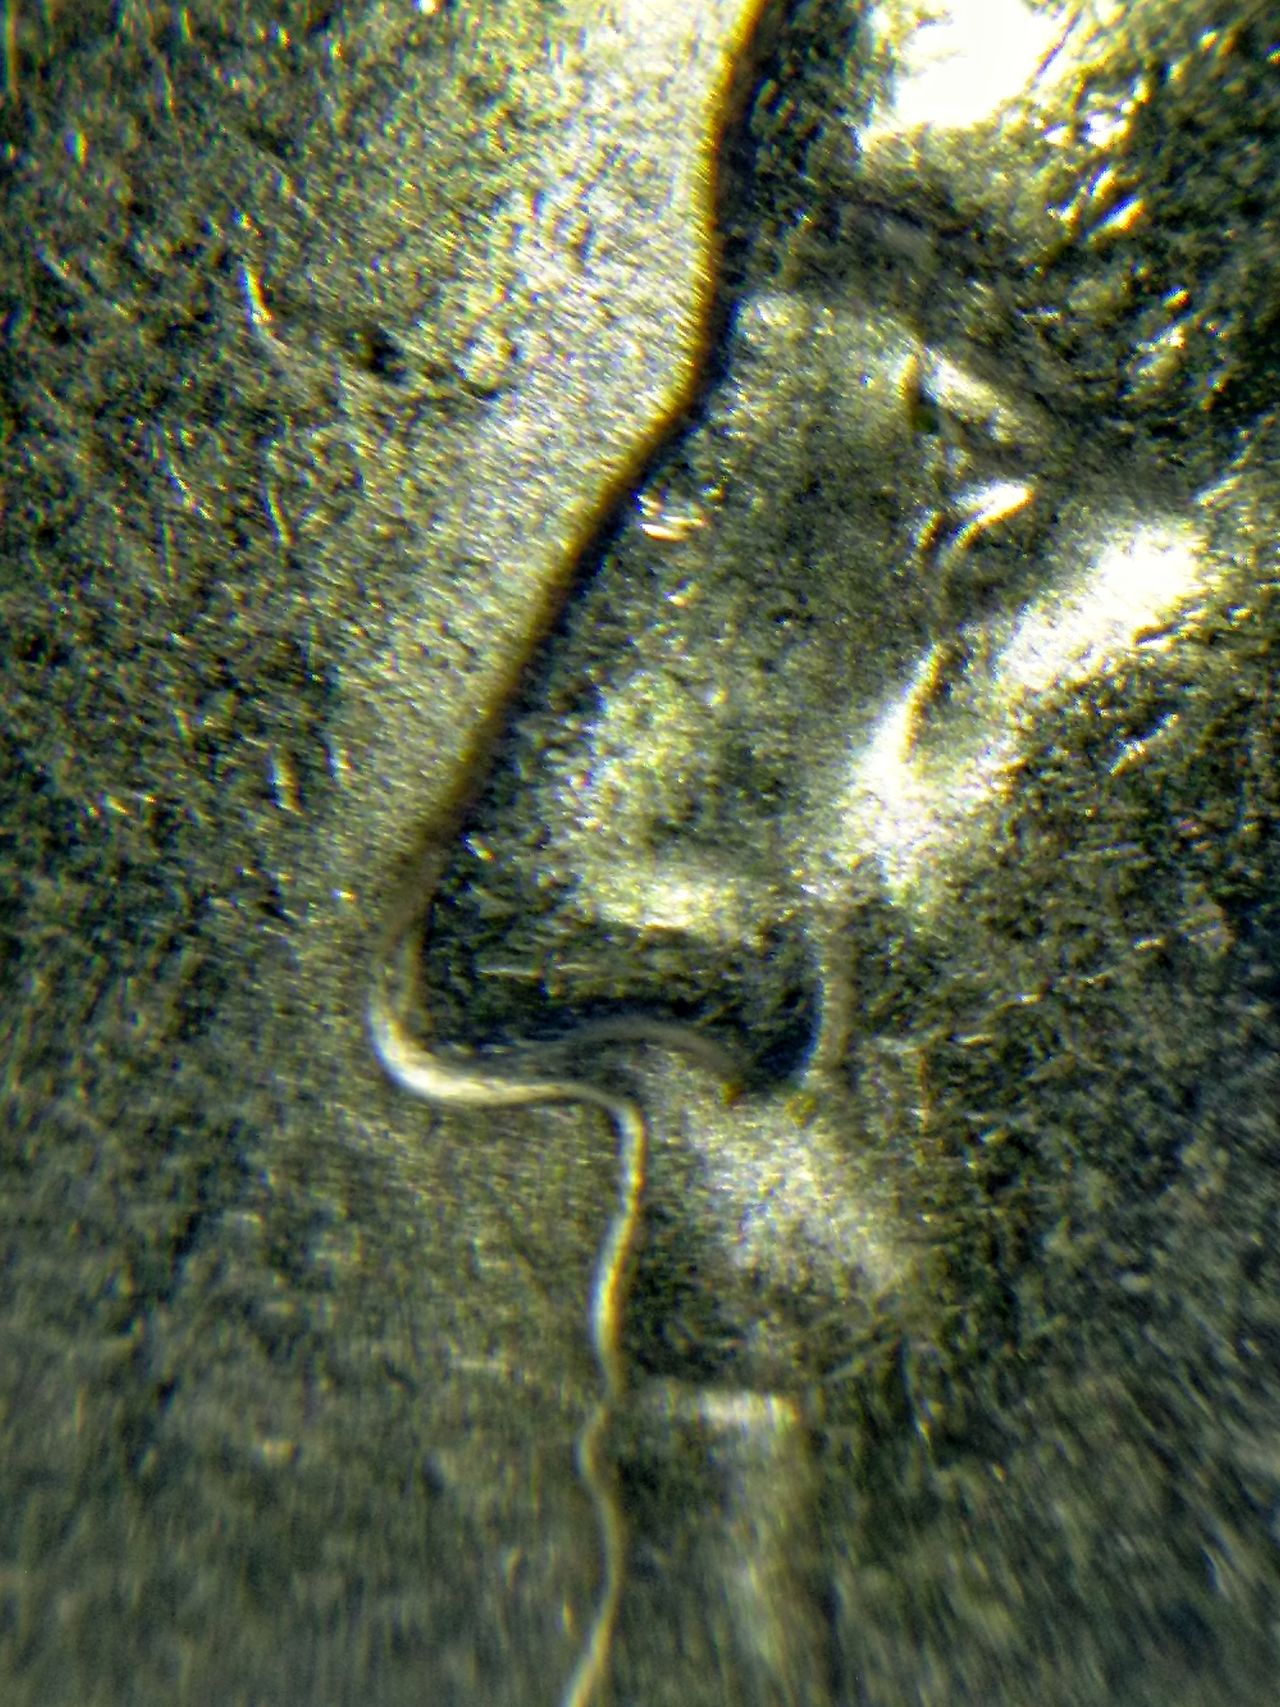 The Portrait of Washington NaturePresident Coin Quarter  Microscope Metal Close-up EyeEmNewHere Backgrounds EyeEm Best Shots No People Faces Of The Money Under The Microscope